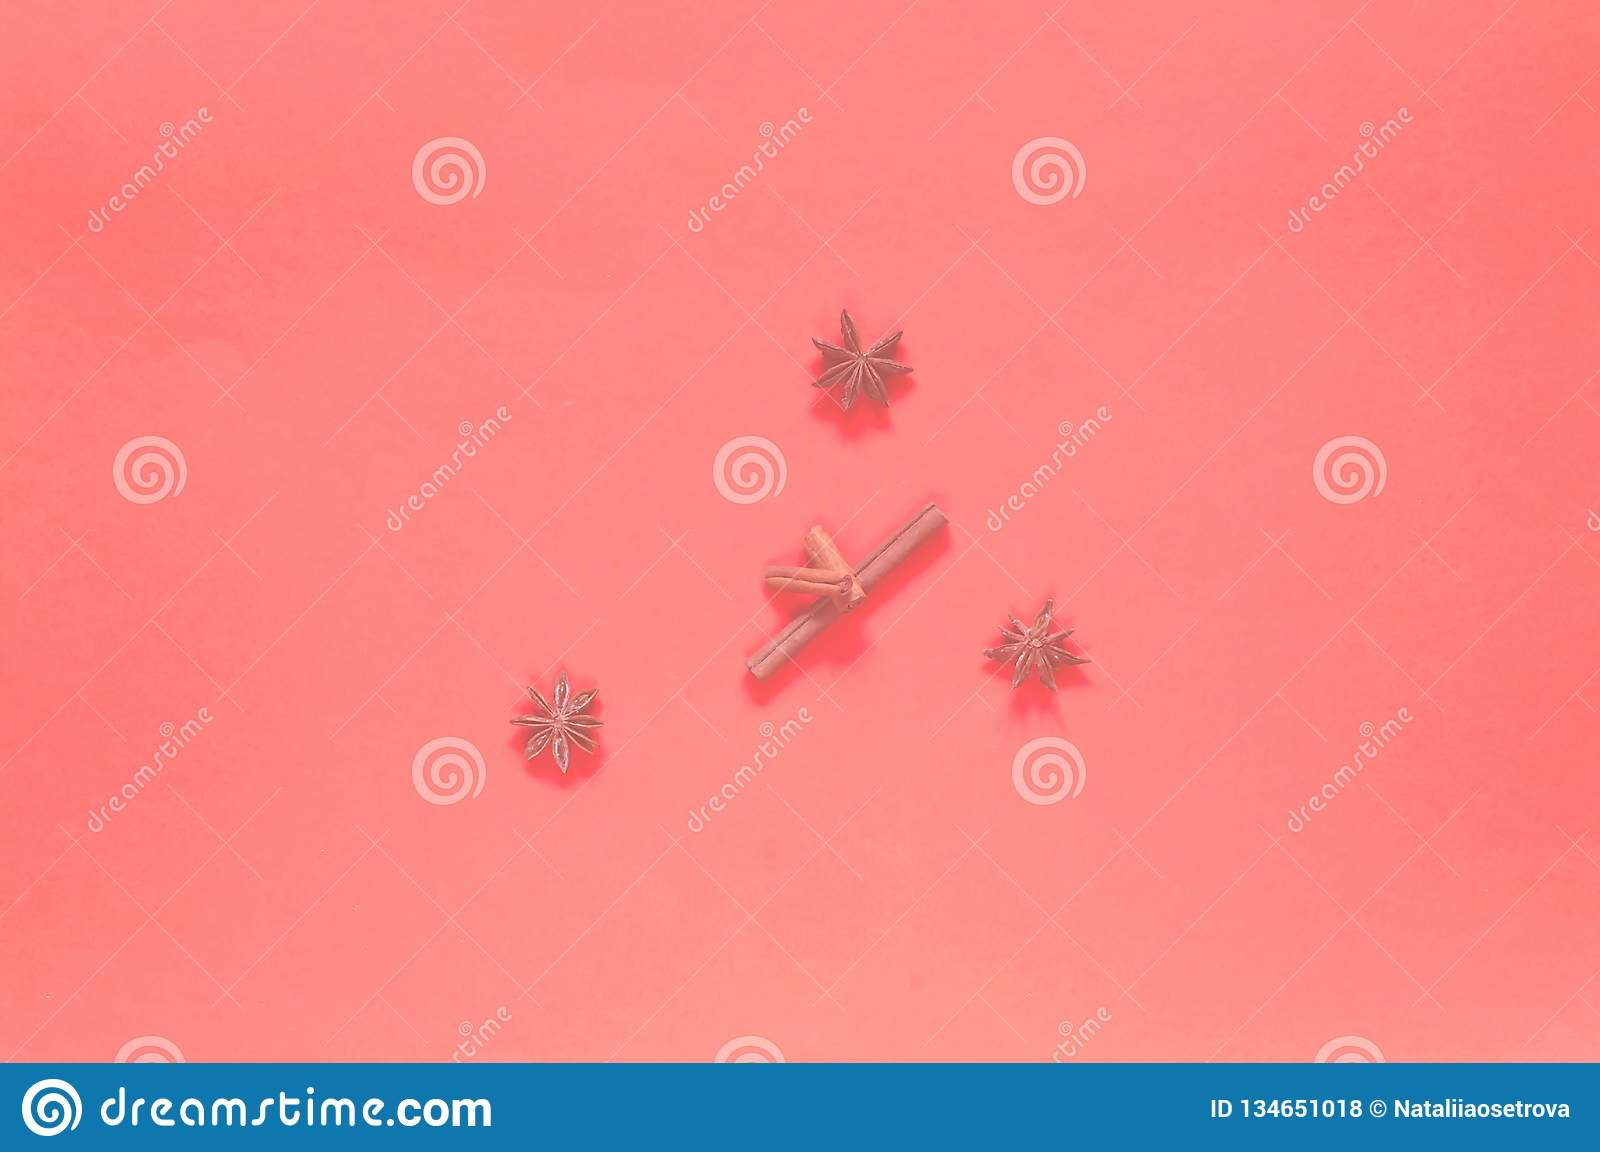 Food Foundation With Spices  Anise And Cinnamon On A Coral